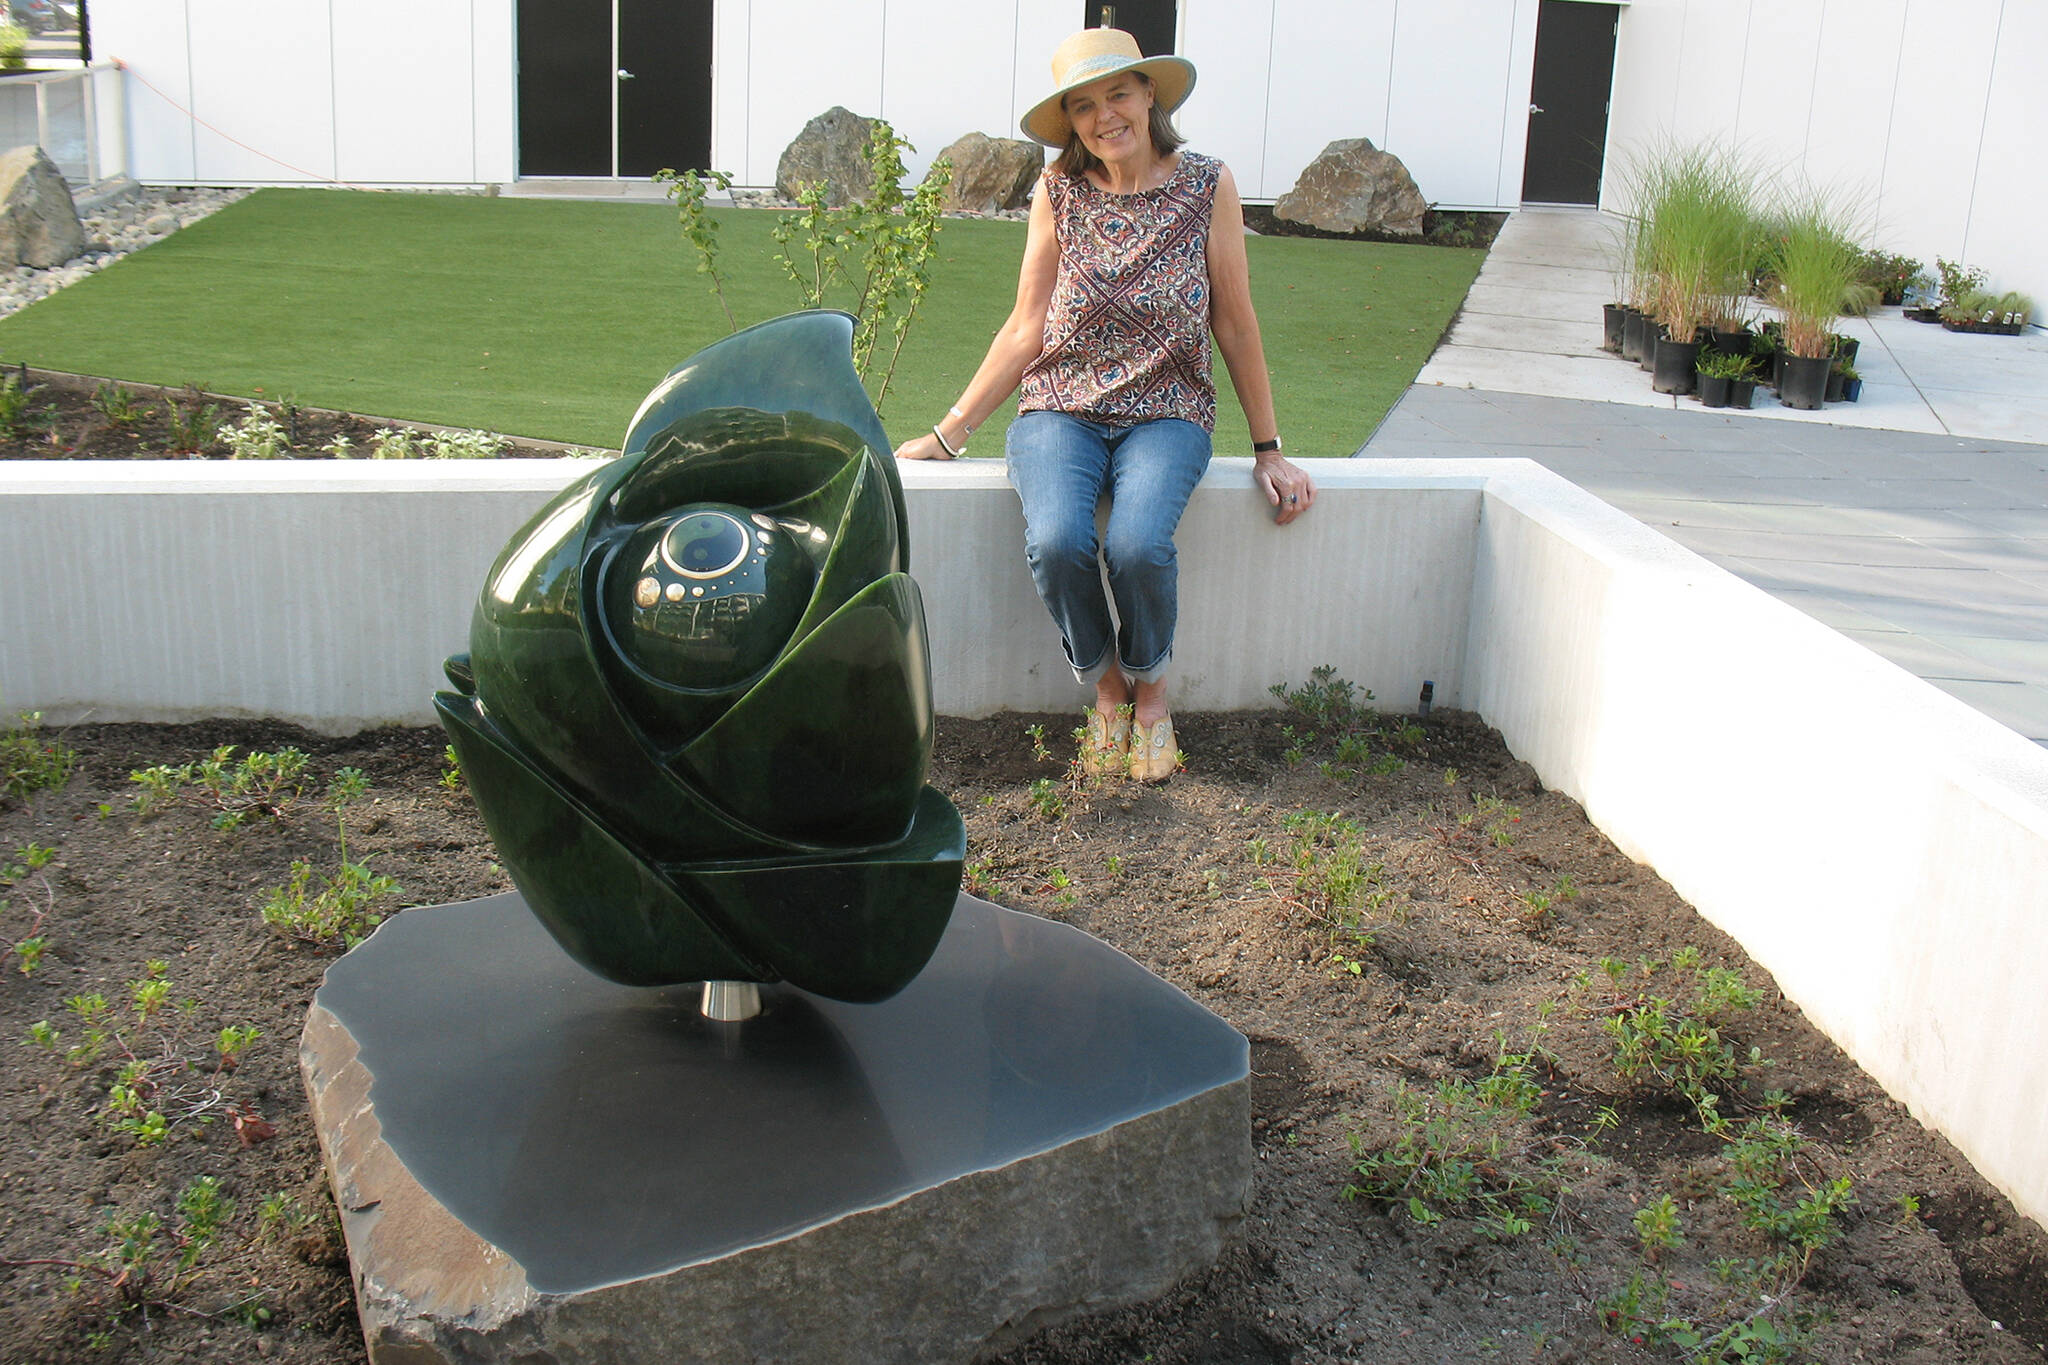 Vernon's Deborah Wilson created a giant jade sculpture at a Victoria complex, which took 16 months to create. (Contributed)